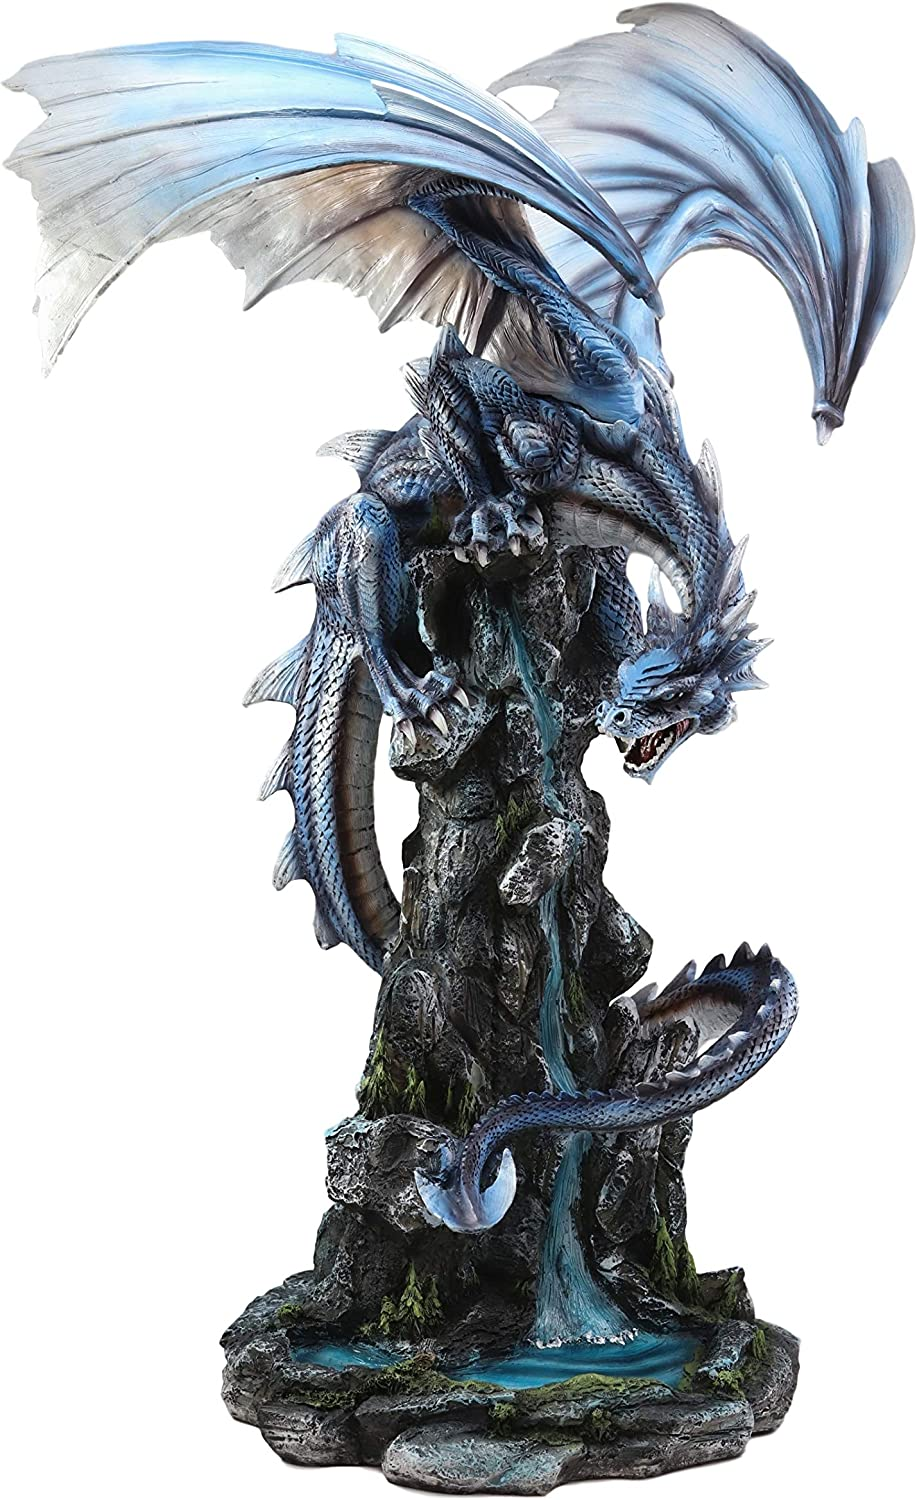 Ebros Gift Large 23 Tall Blue Zirconia Rogue Storm Dragon Hovering Over Cliff Rock Waterfall Statue As Dungeons And Dragons Decor Sculpture Fantasy Medieval Renaissance Figurine Home Kitchen